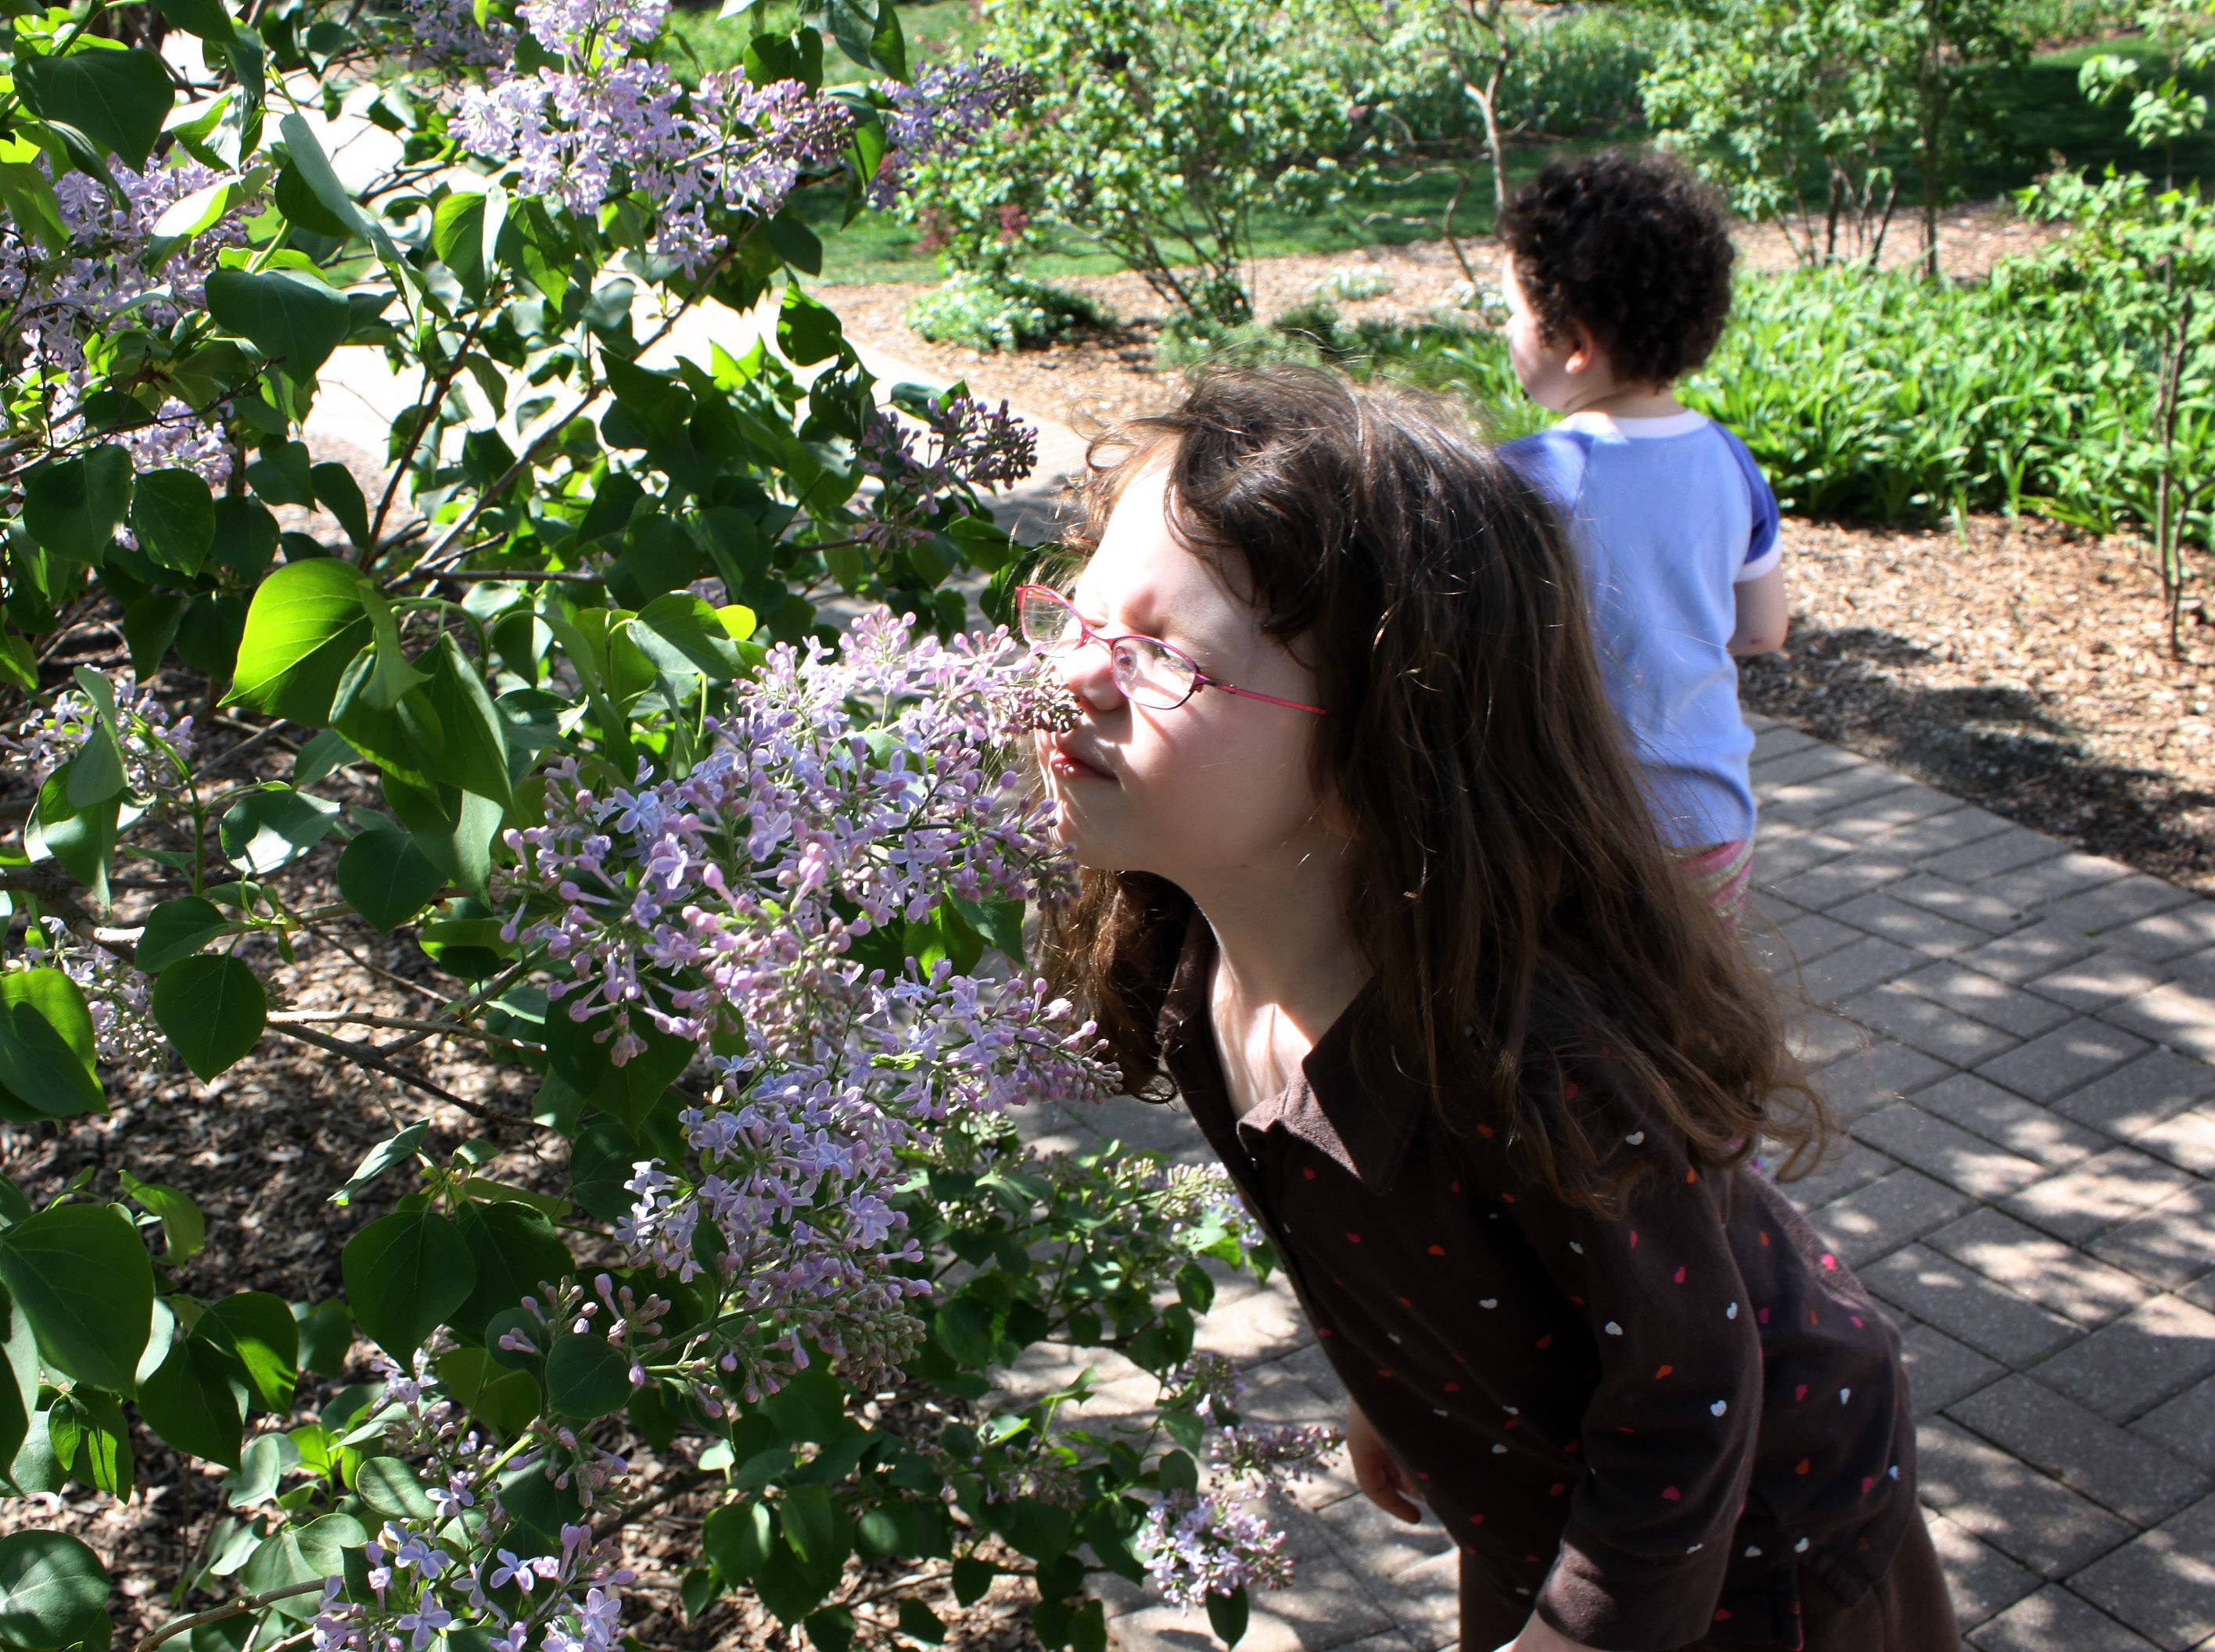 Lilac Time quickly approaching in Lombard